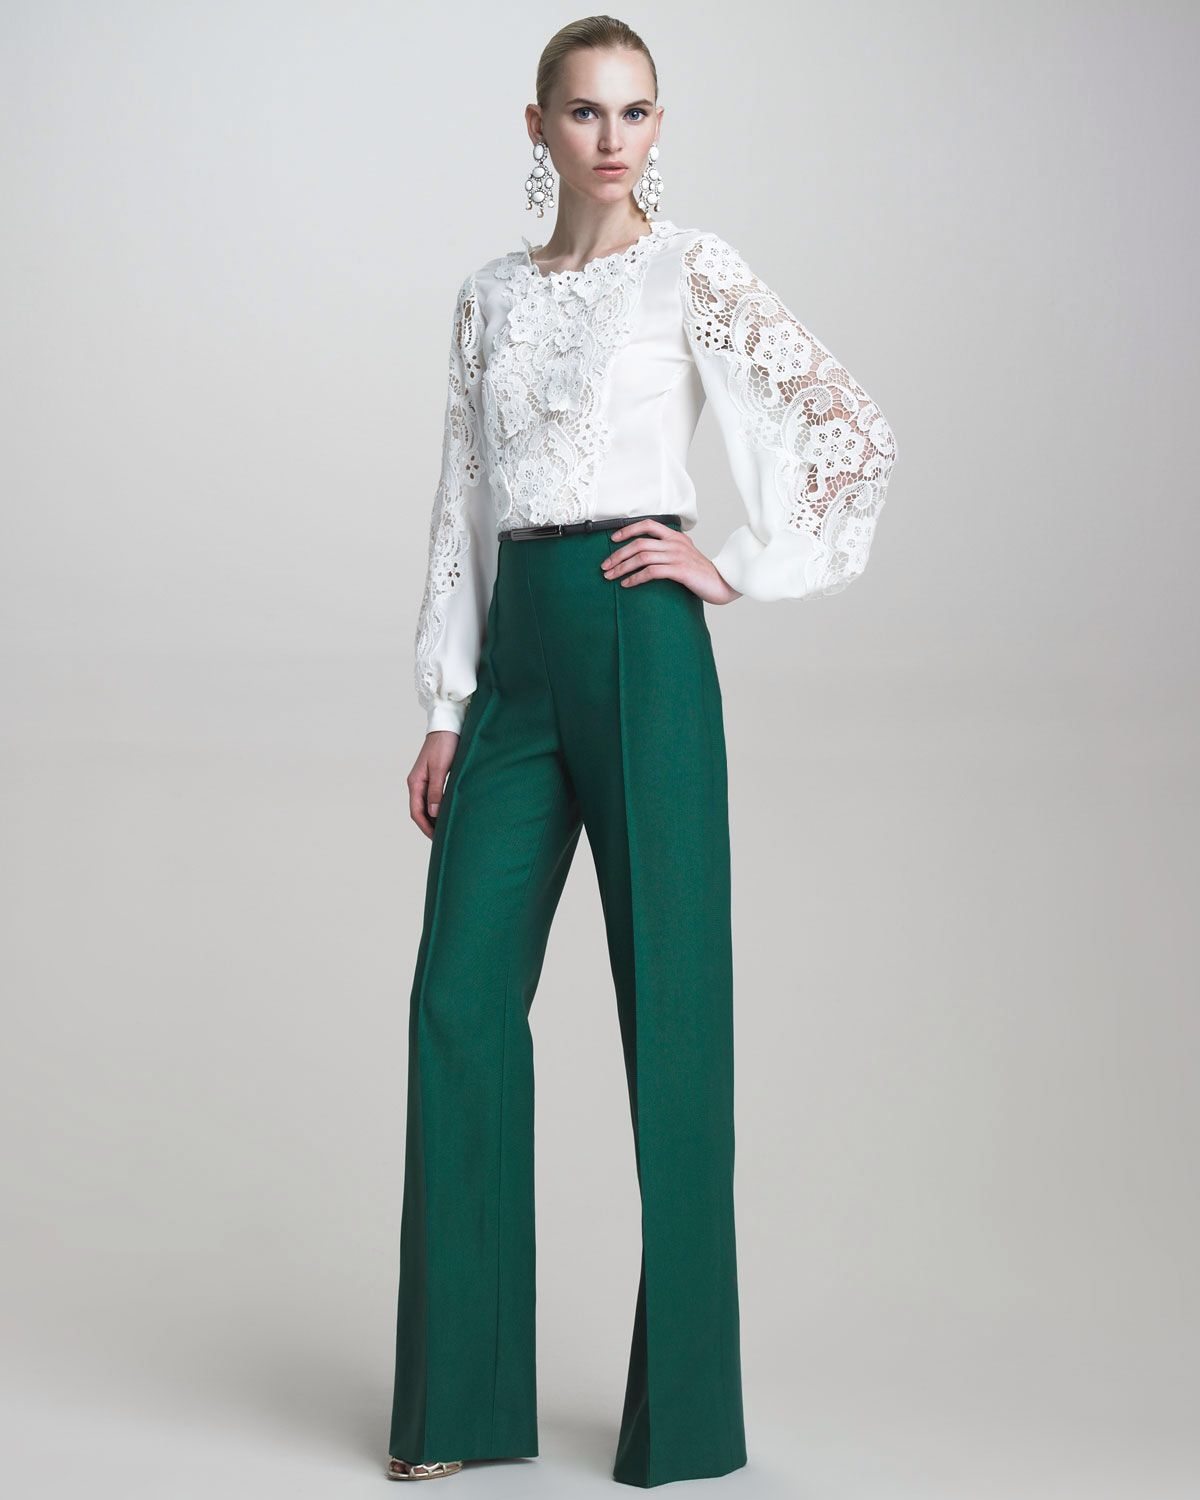 How to emerald wear green pants